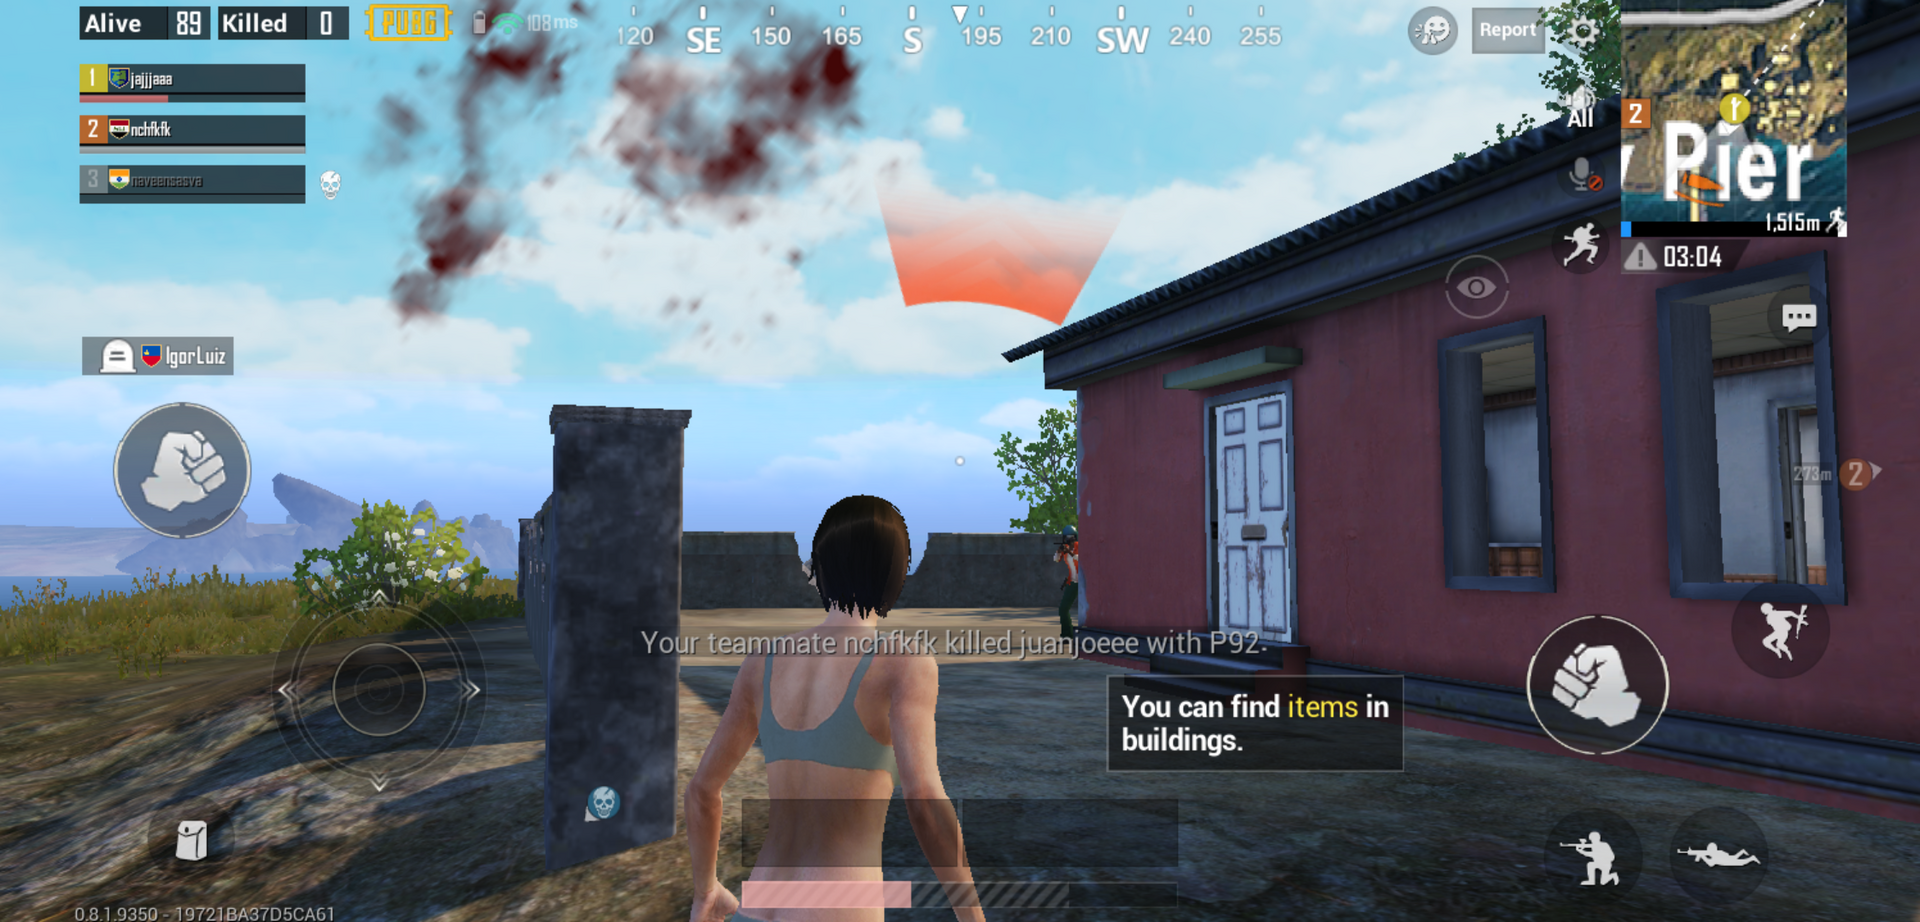 Pubg Mobile On Intel Hd Graphics Settings Tencent Gaming: Xiaomi Mi 8 Explorer Edition Smartphone Review